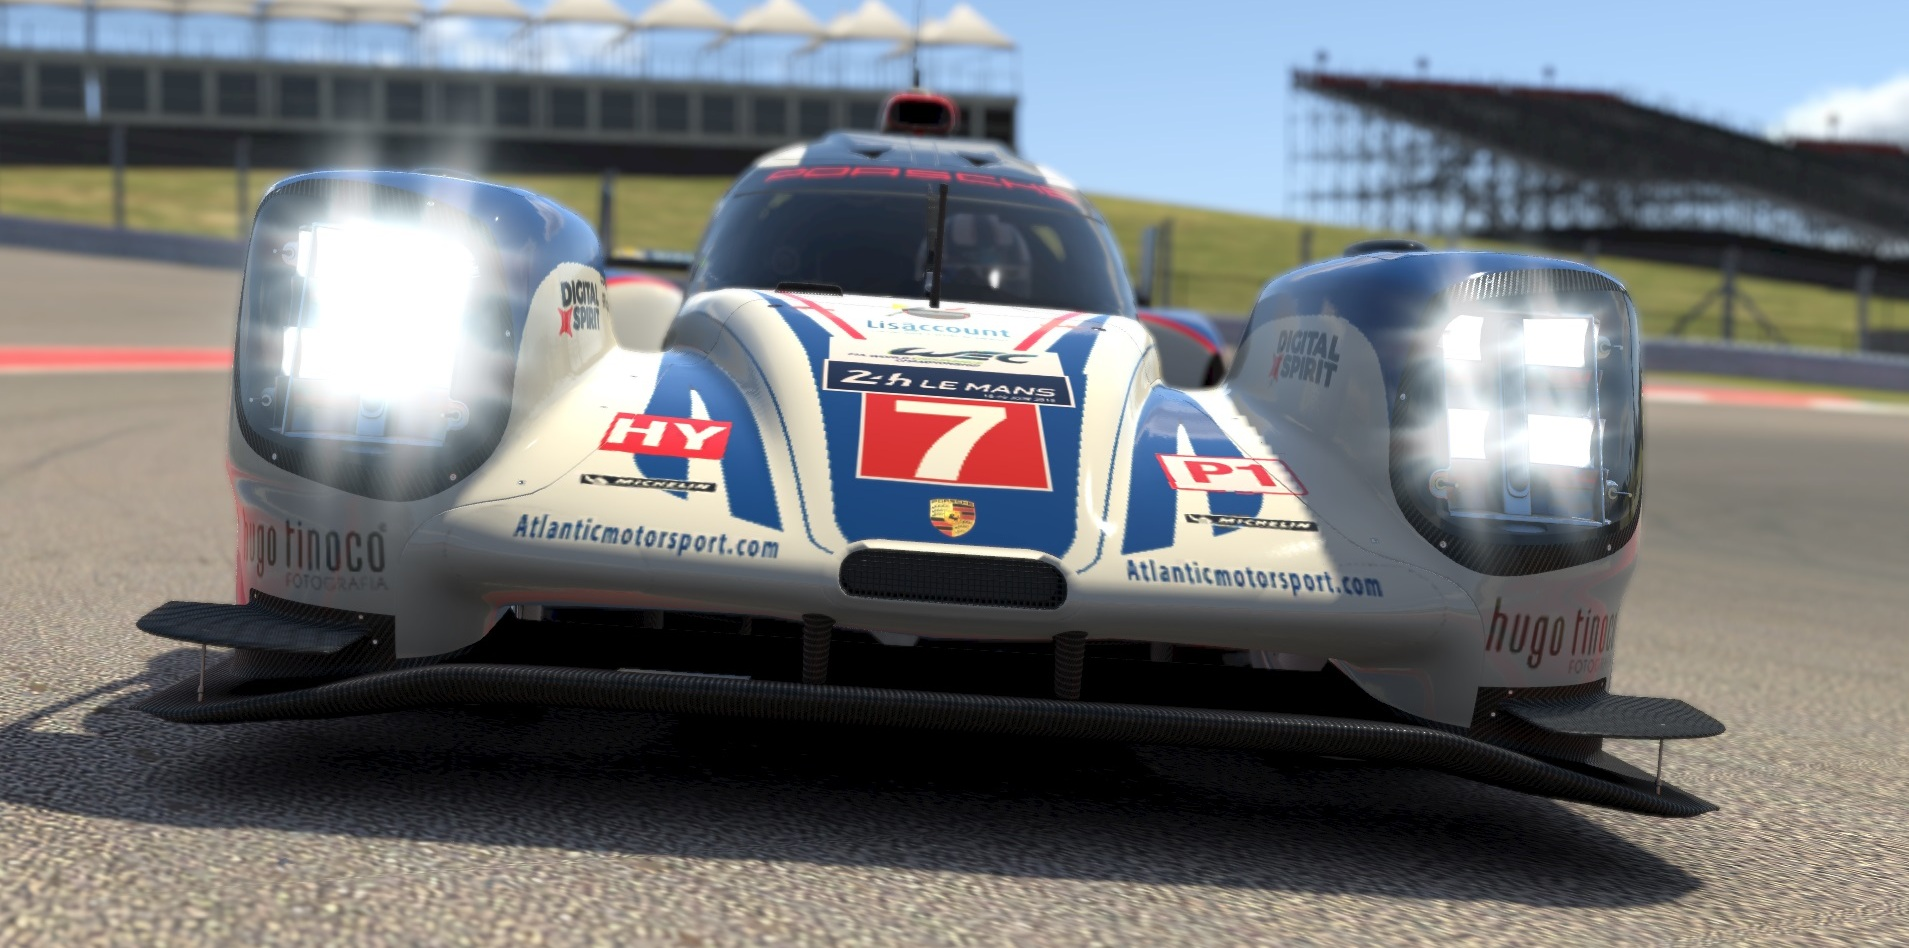 Atlantic Motorsport presents the new Porsche 919 LMP1 Hybrid  for iRacing